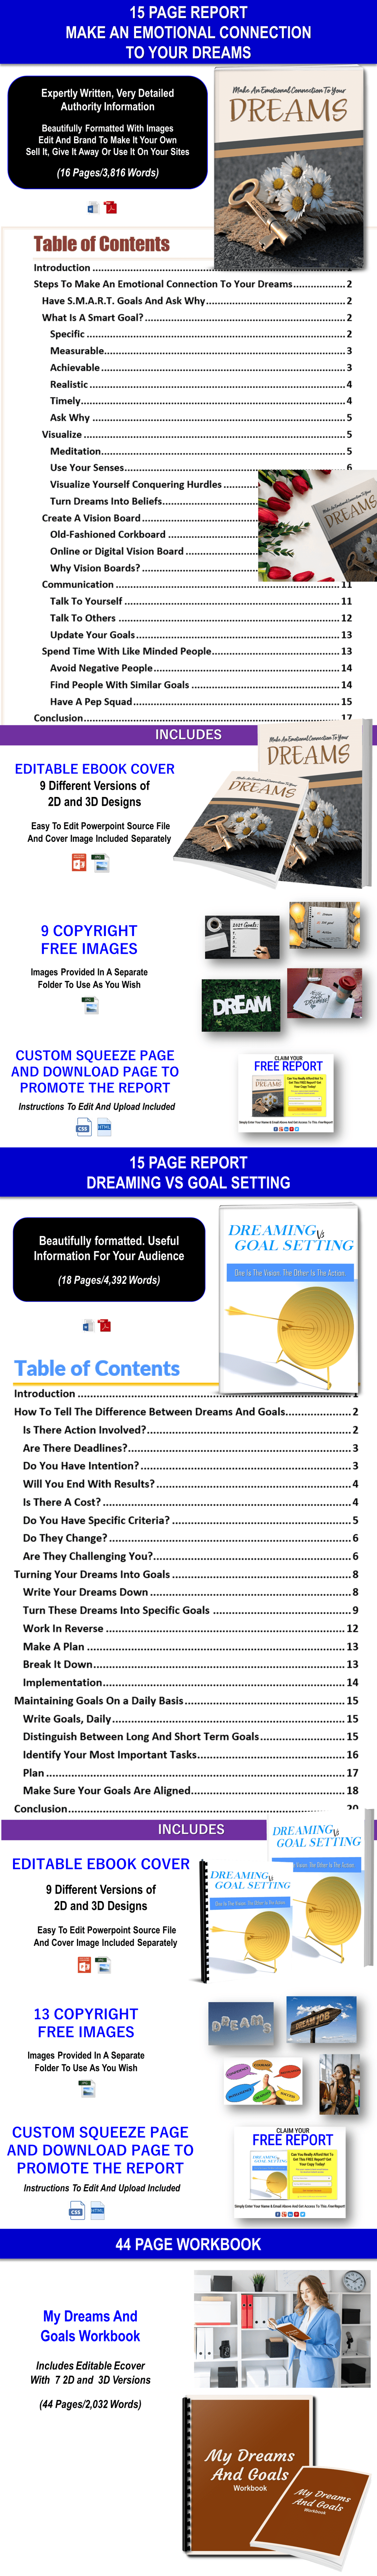 Make an emotional connection to your dreams Content With PLR Rights